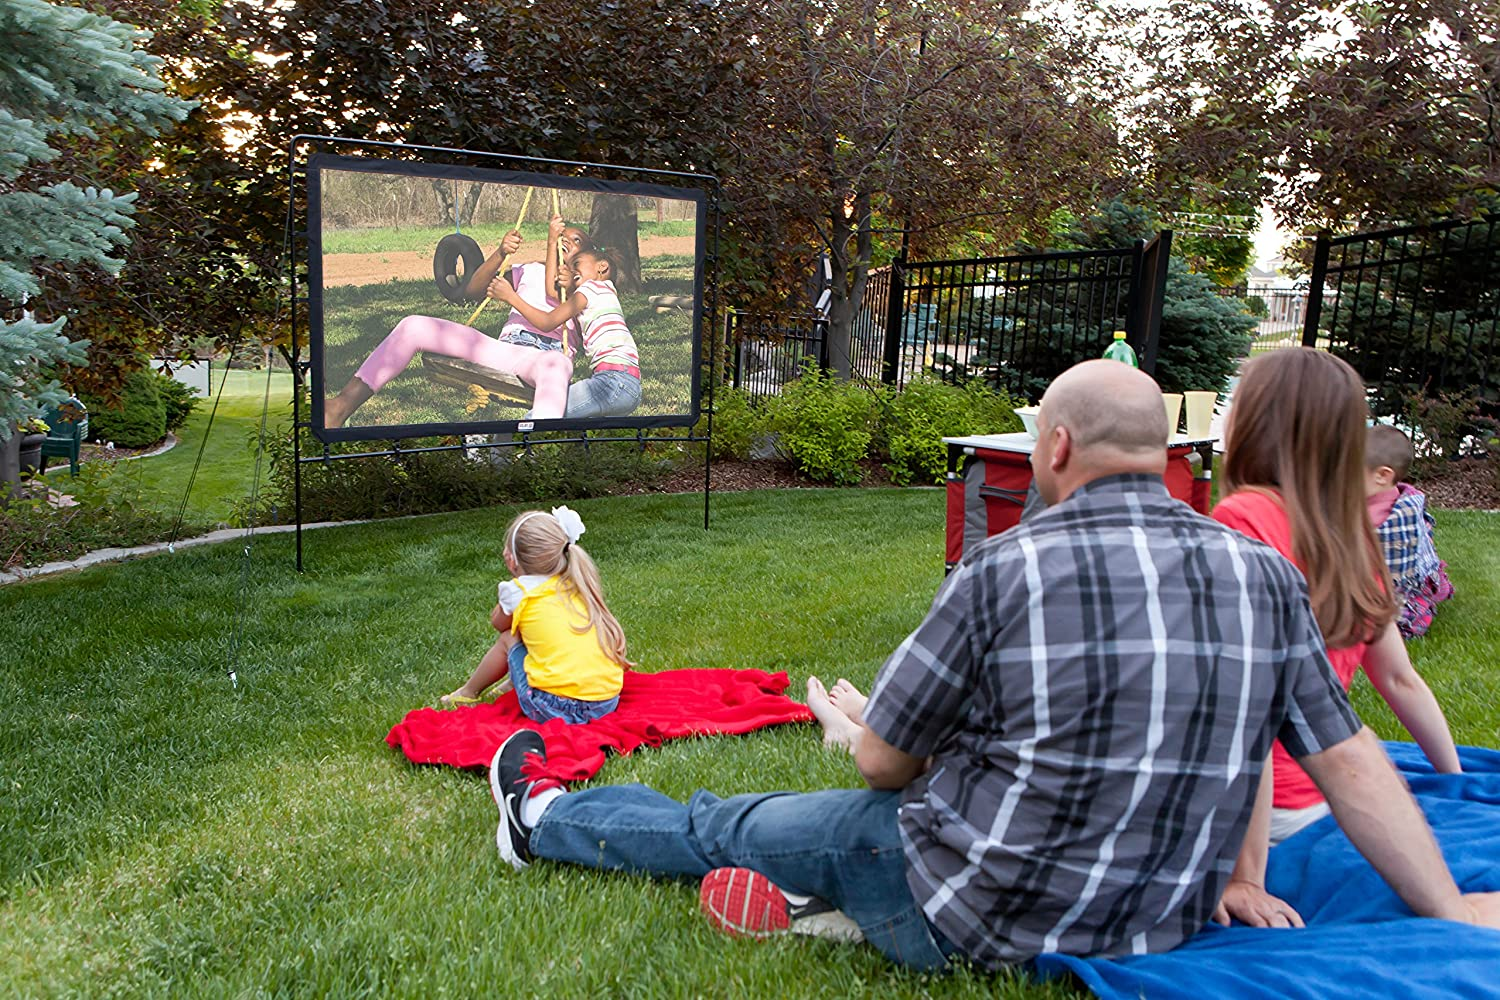 Amazoncom Camp Chef OS92L Portable Outdoor Movie Screen 92 Inch